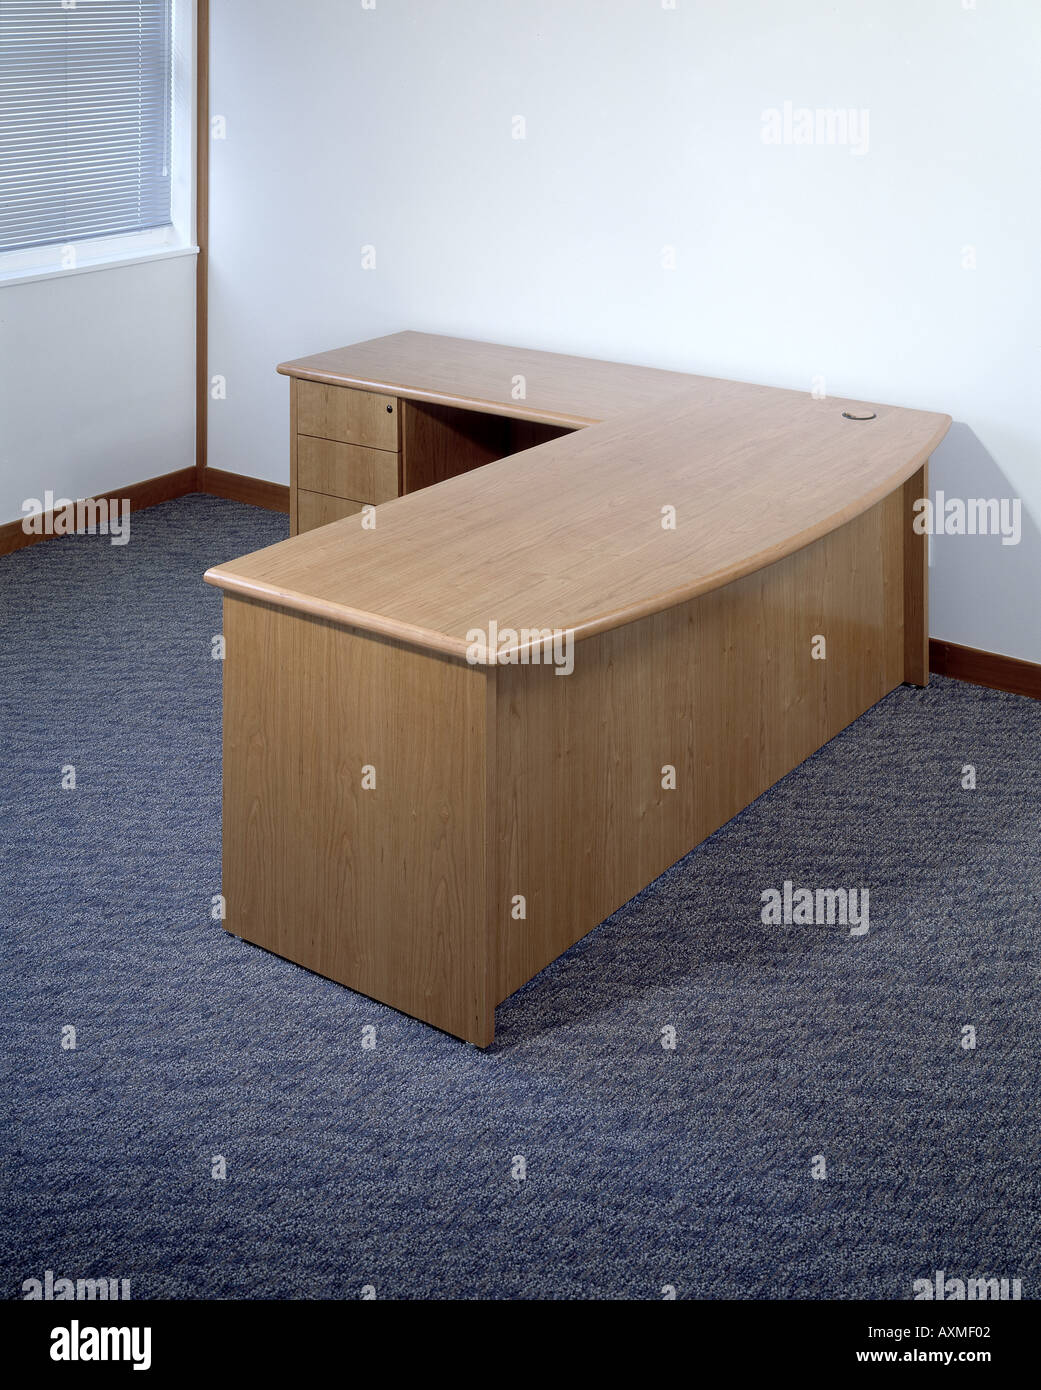 OFFICE FURNITURE AES - Stock Image